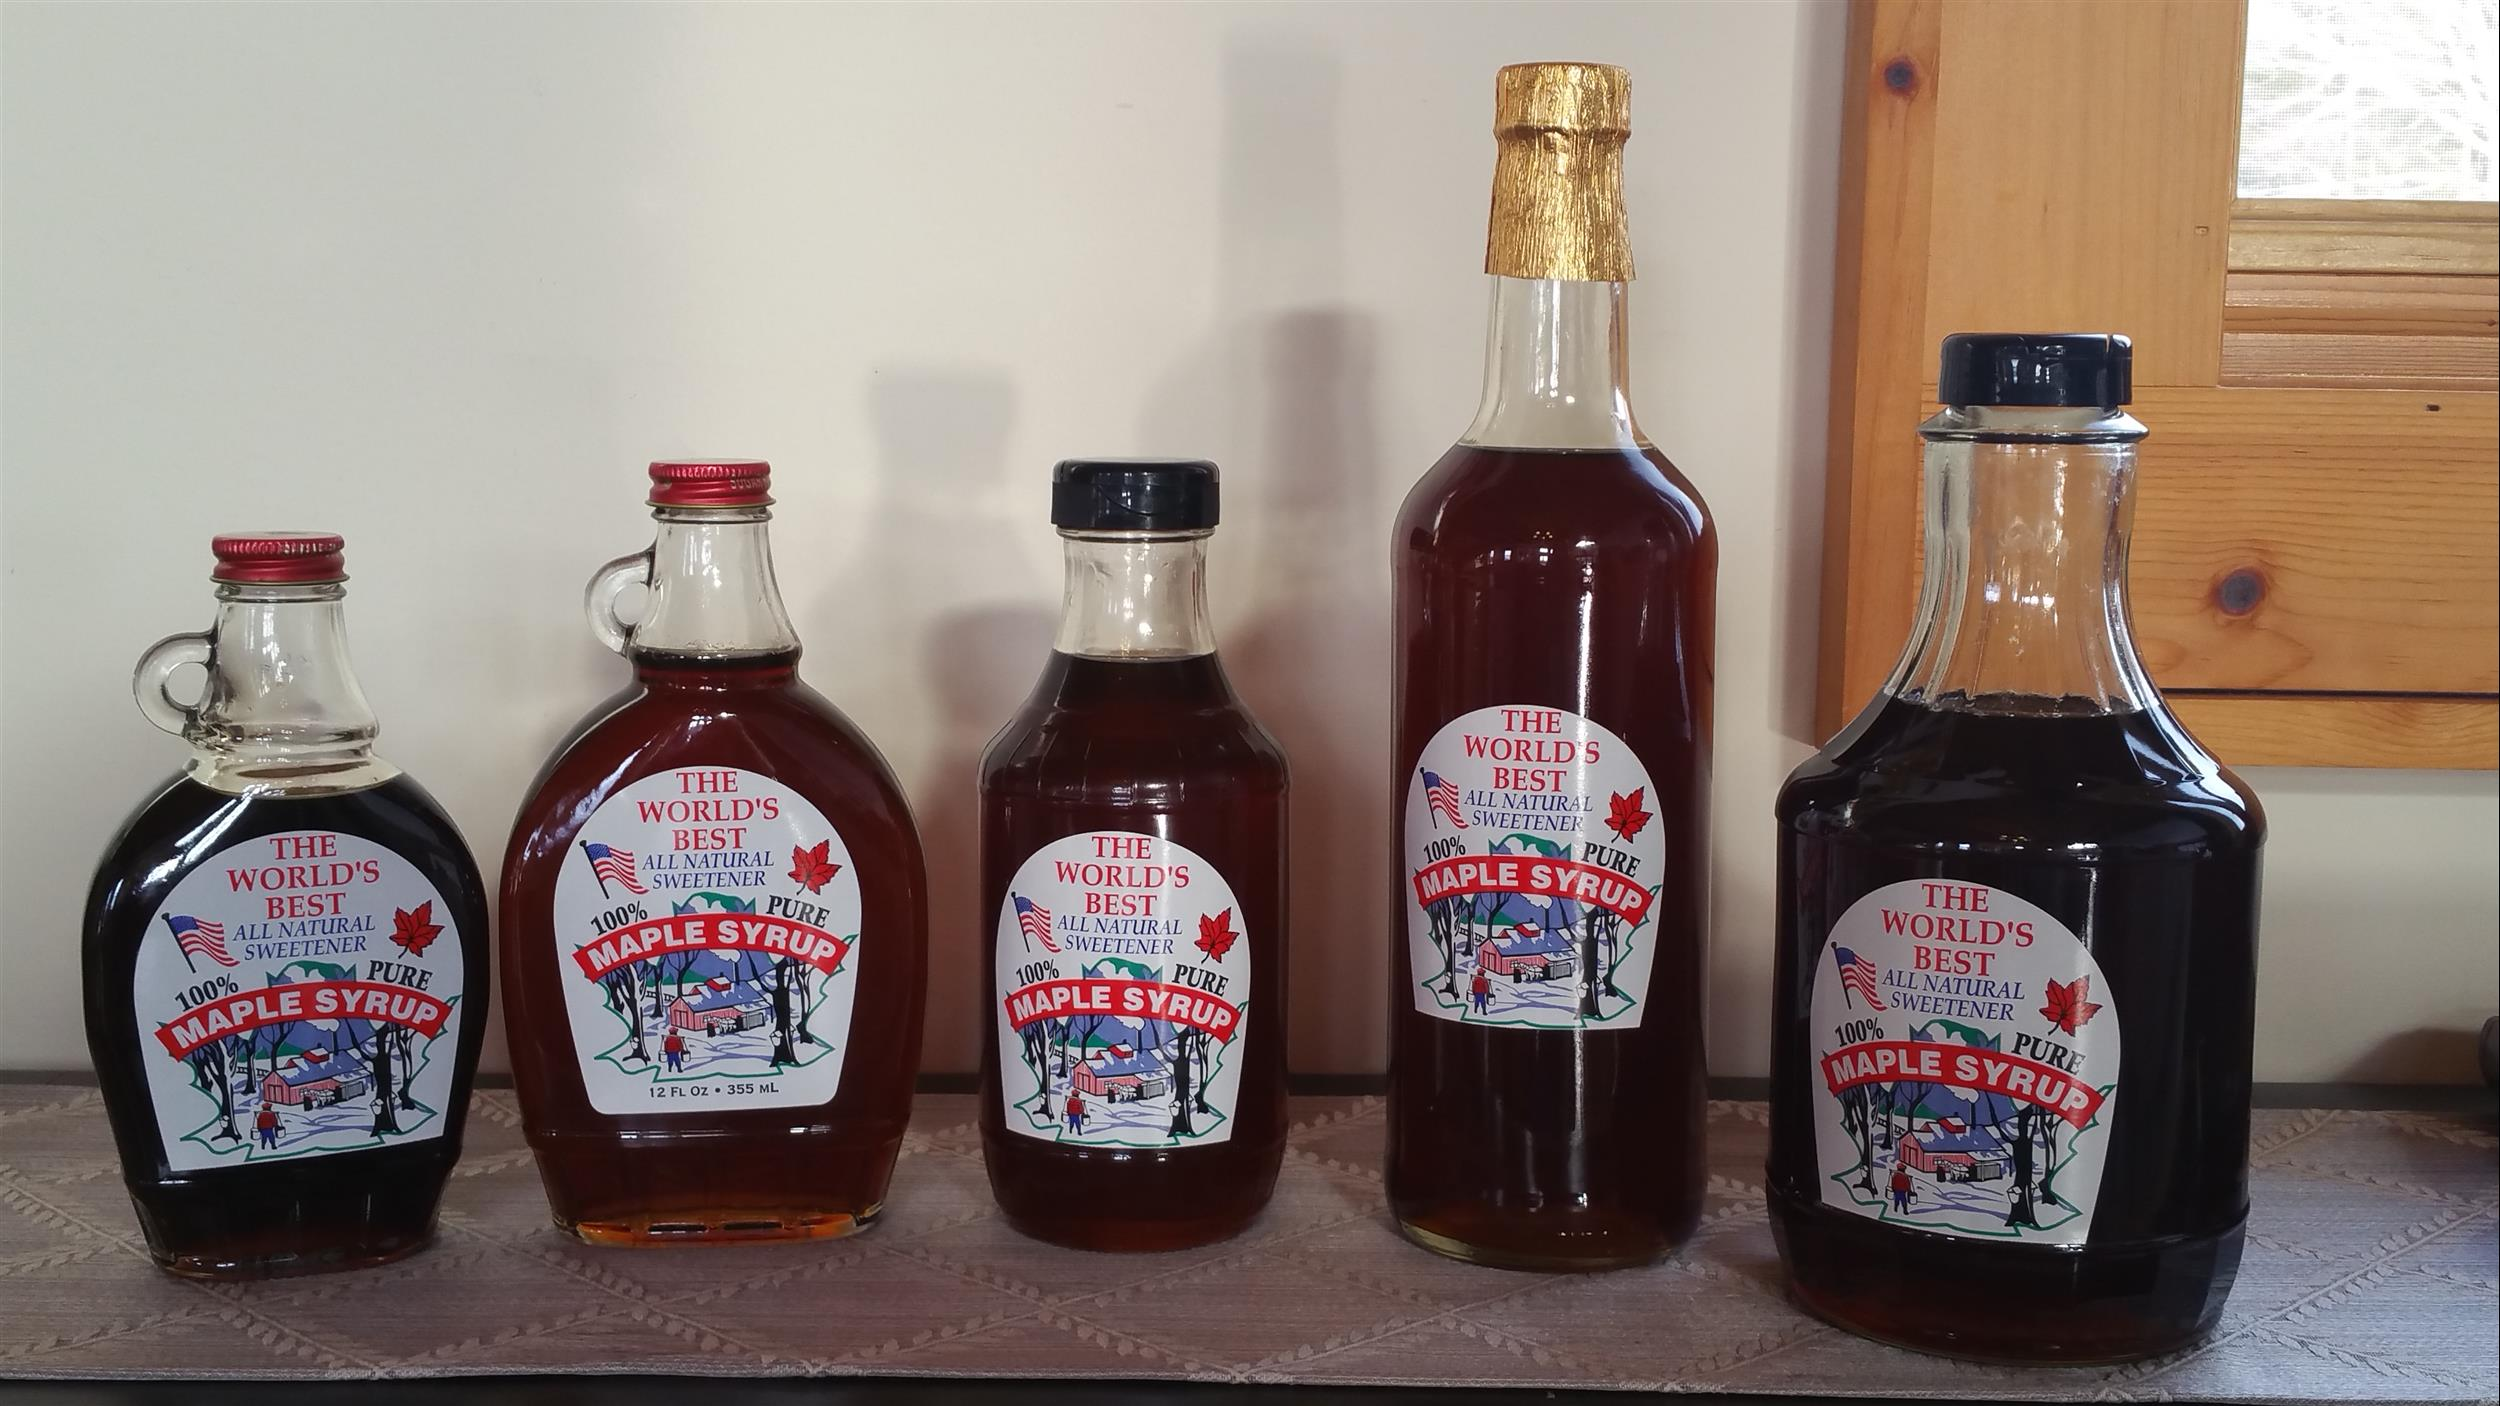 5 glass bottles of Tenwood Lodge Maple syrup